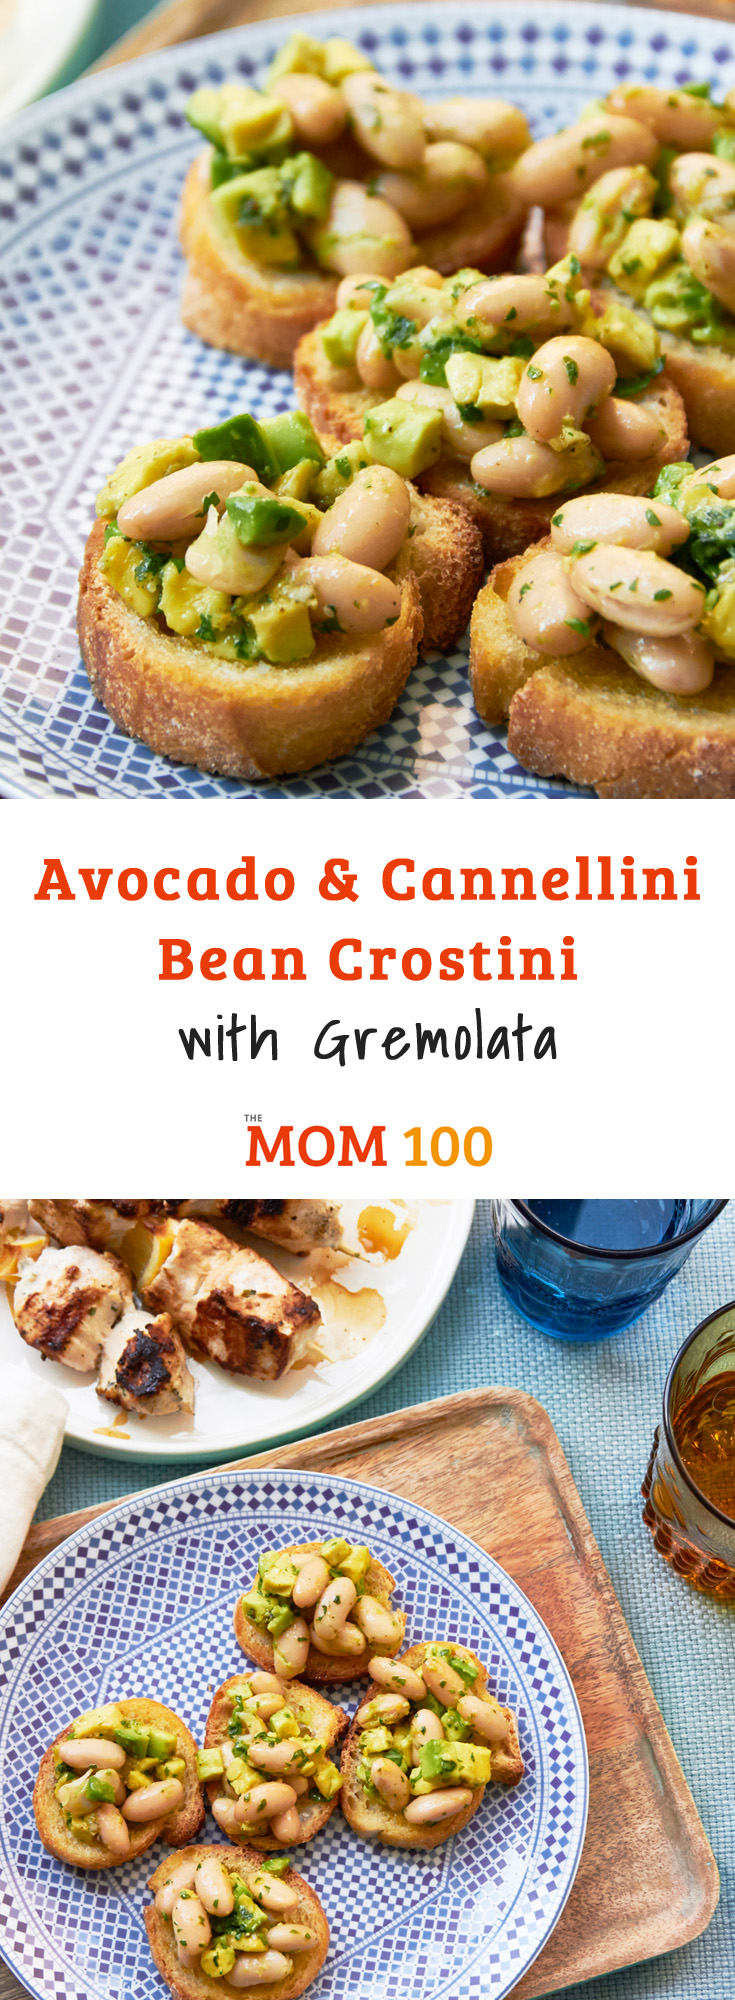 Avocado And Cannellini Bean Crostini With Gremolata